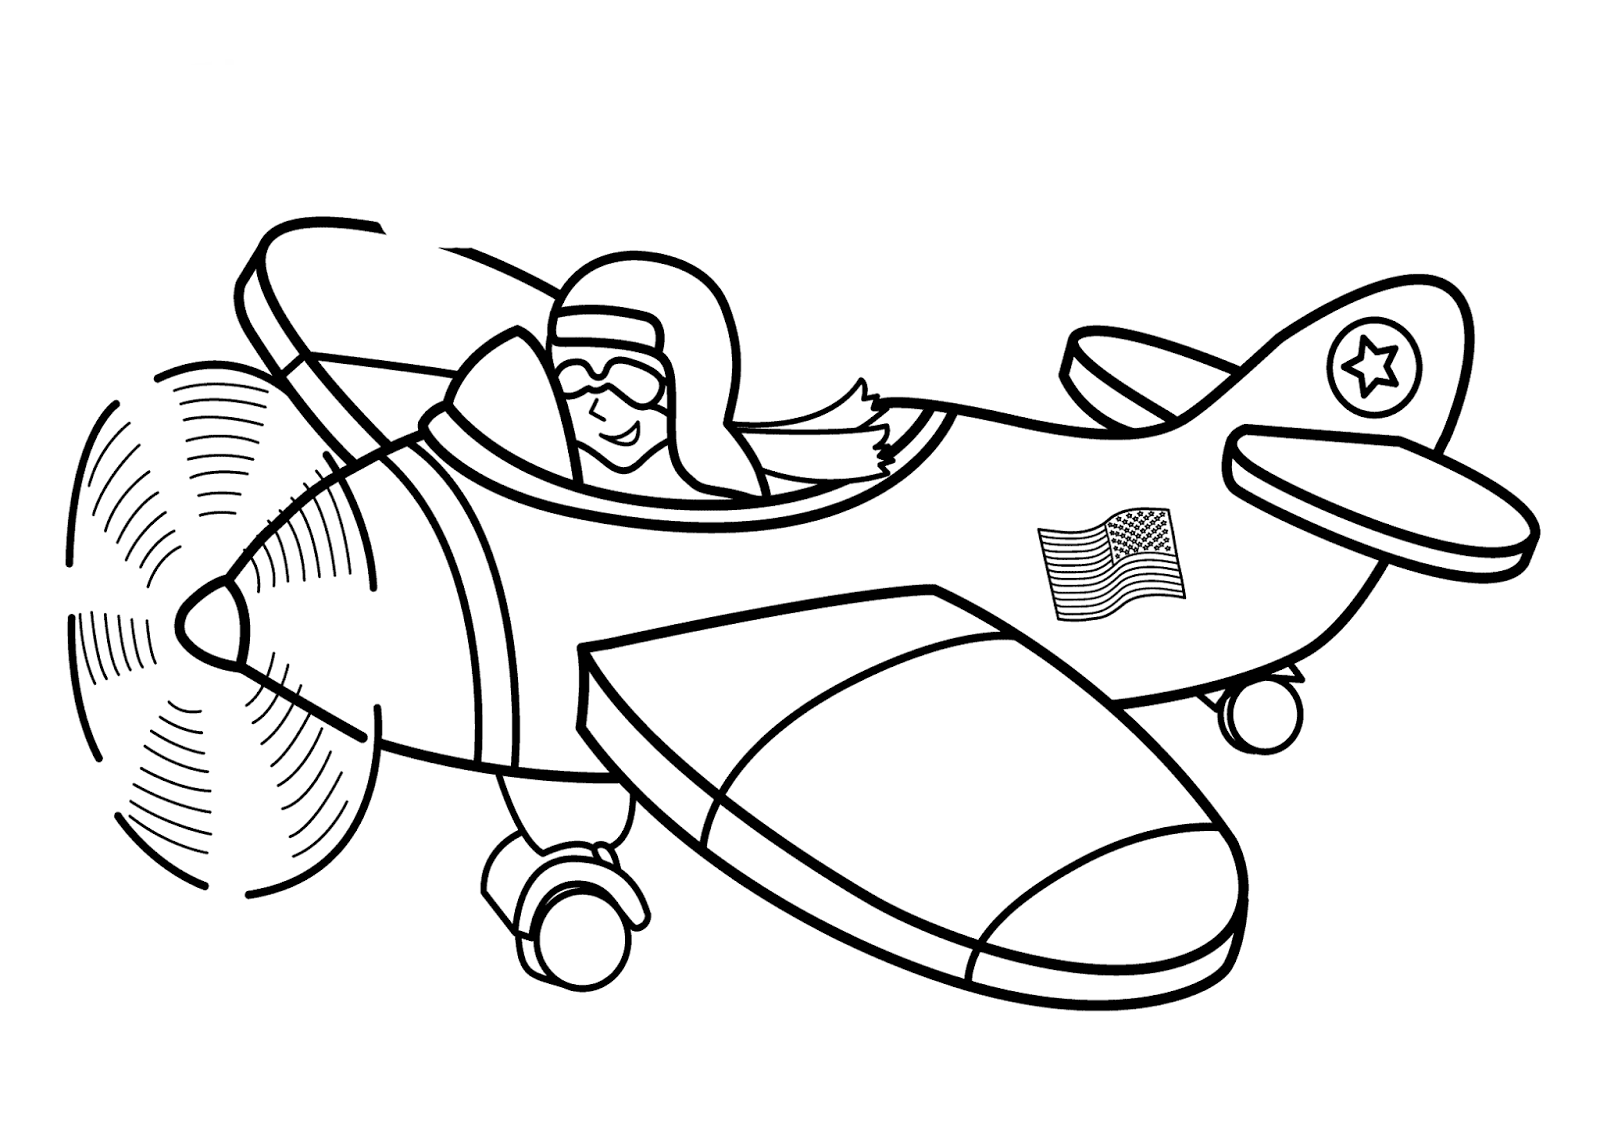 planes coloring pages for kids - photo#19